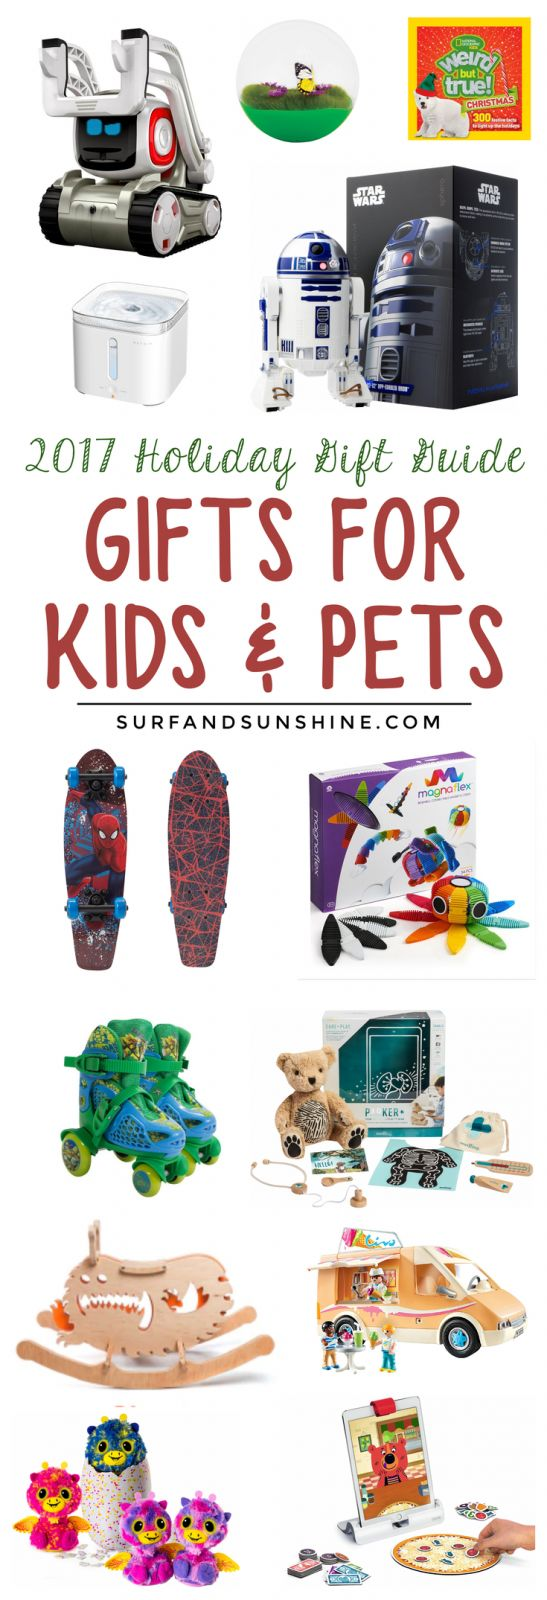 Holiday Gift Guide 2017: Gifts For Kids and Pets via @jeanabeena